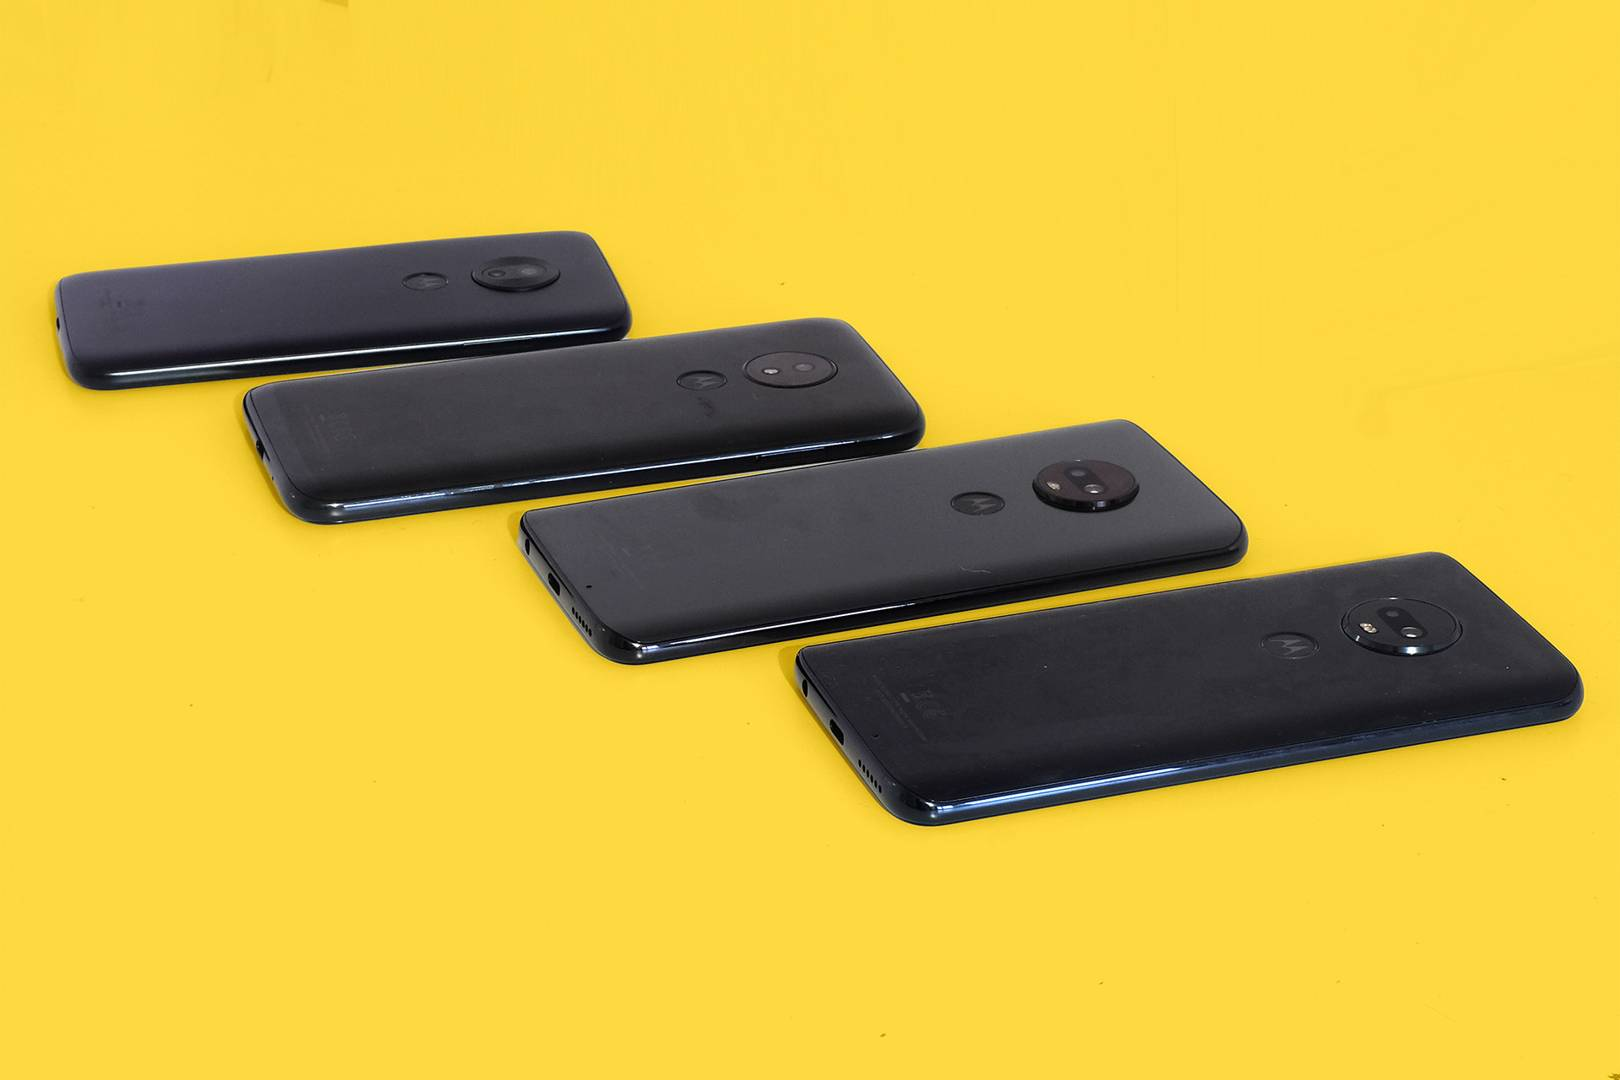 Moto G7 vs G7 Plus, G7 Play and G7 Power: Which one should you buy